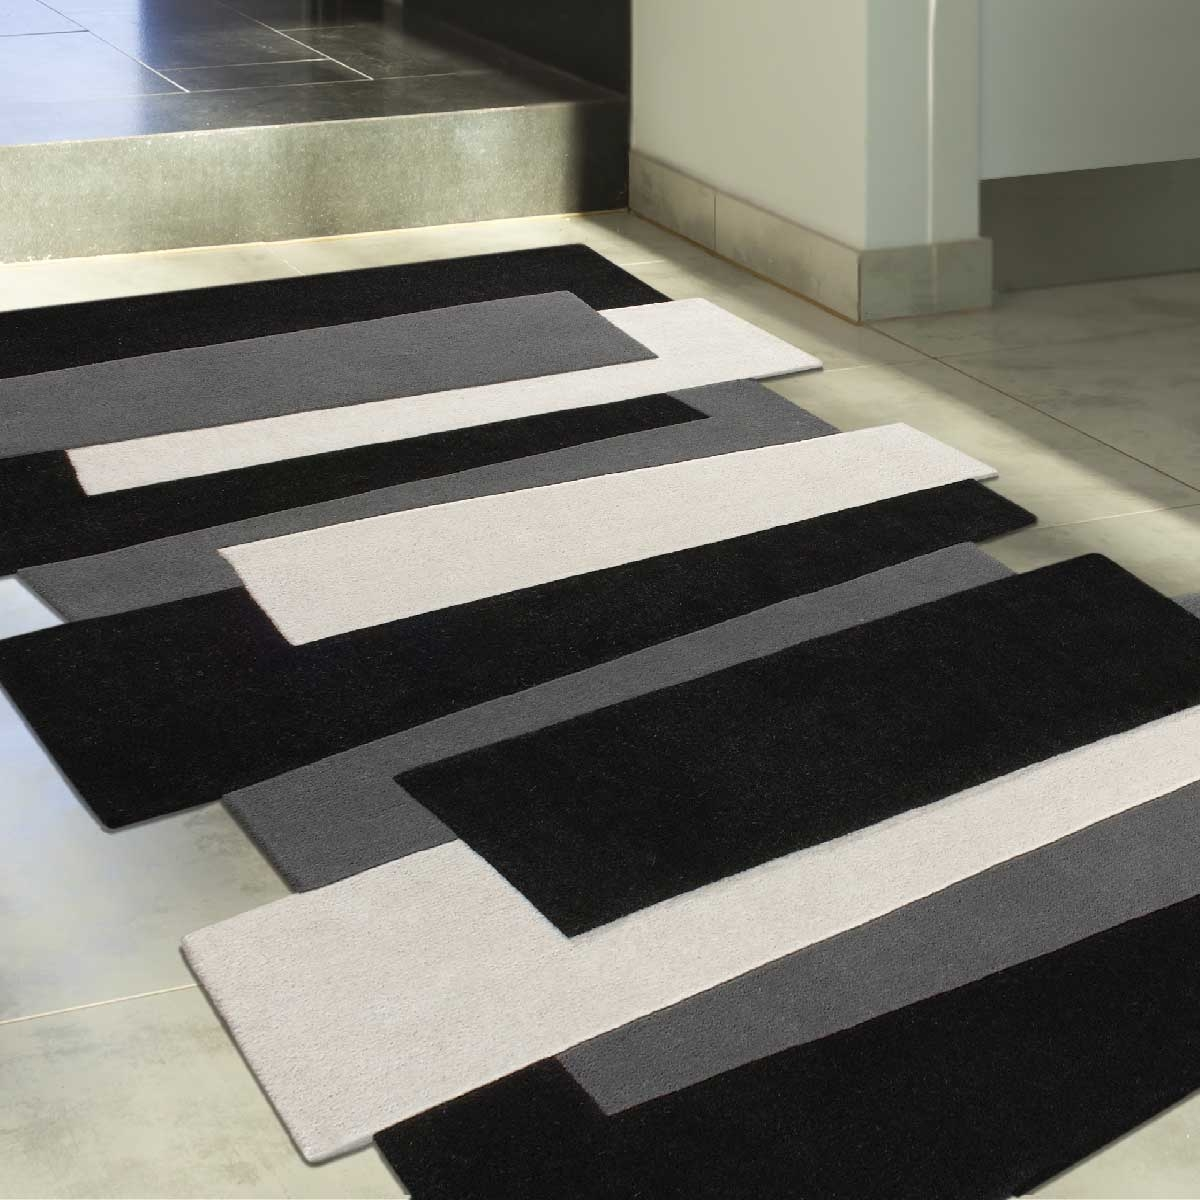 carrelage design tapis ikea grande taille moderne. Black Bedroom Furniture Sets. Home Design Ideas